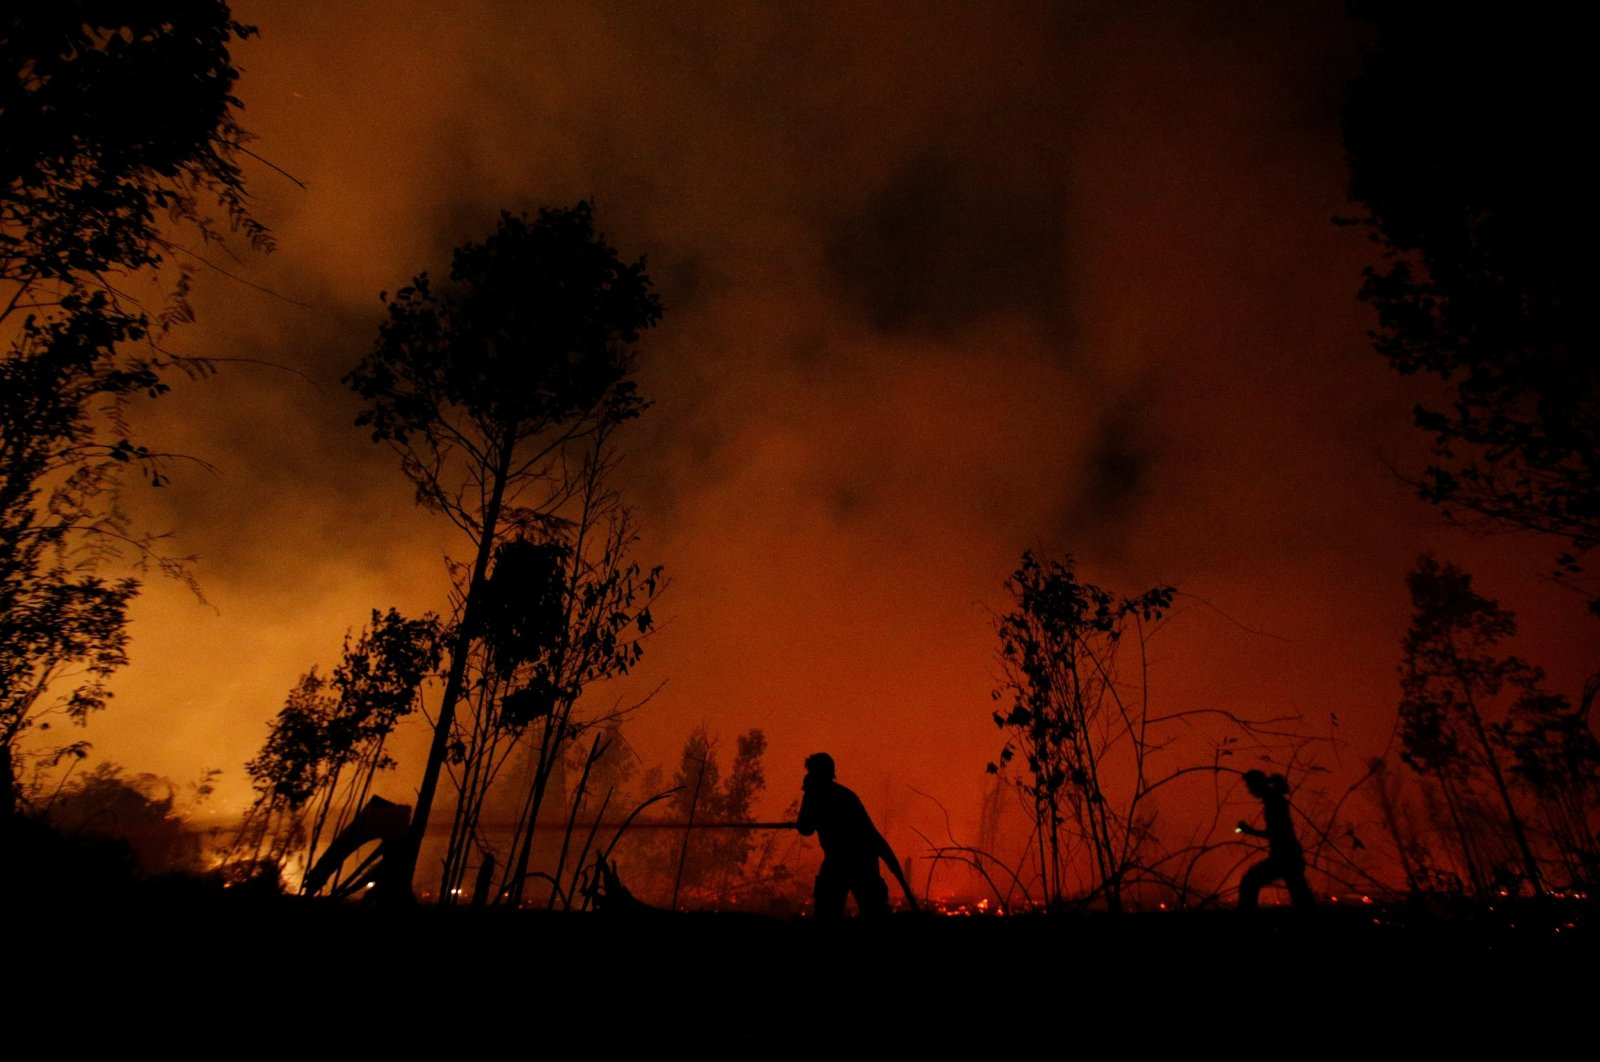 Firefighters try to extinguish forest fires at Sebangau National Park in Palangka Raya, Central Kalimantan province, Indonesia, Sept. 14, 2019. (Reuters Photo)